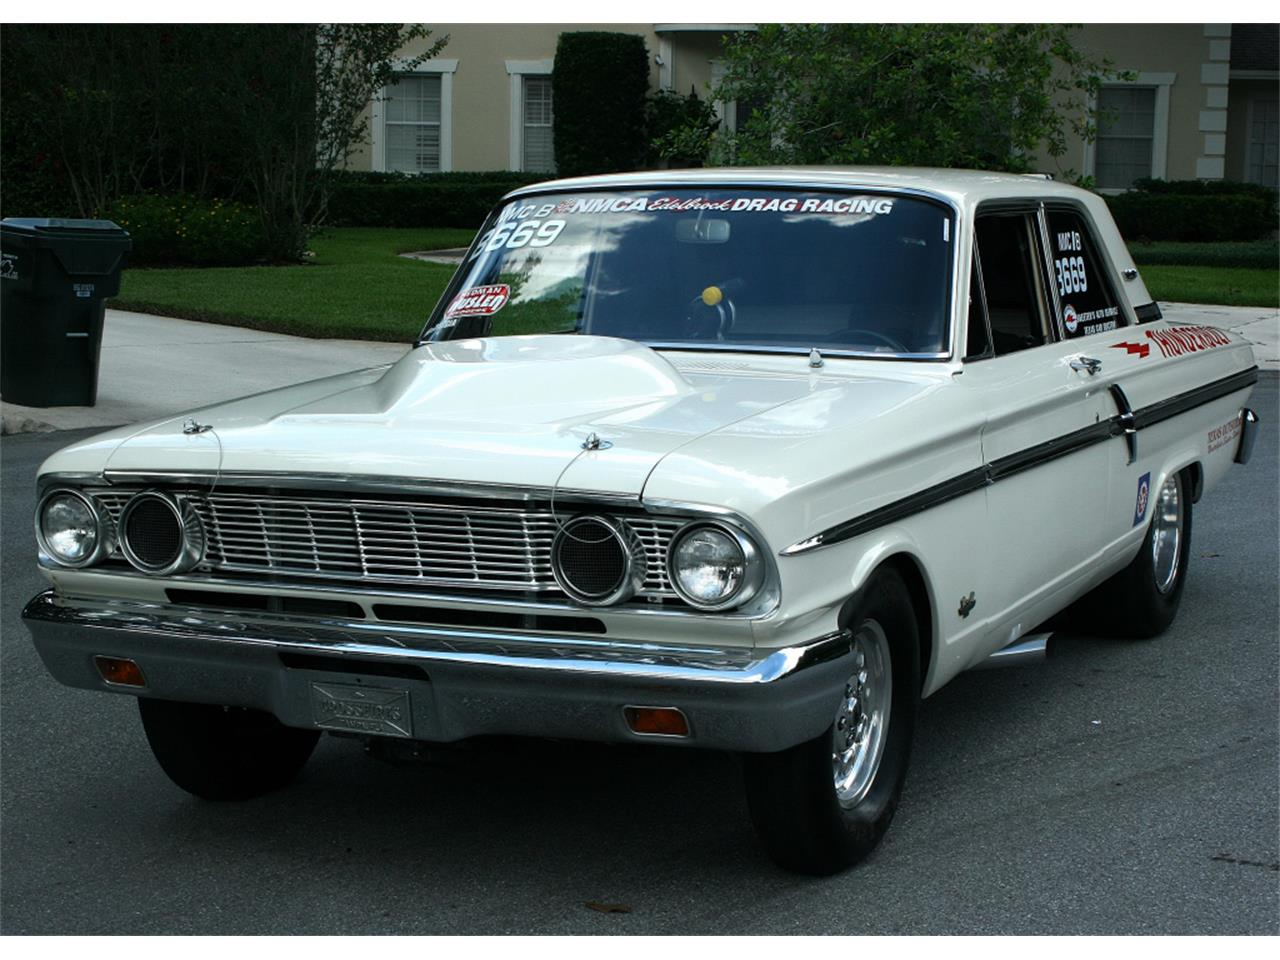 For Sale: 1964 Ford Race Car in lakeland, Florida